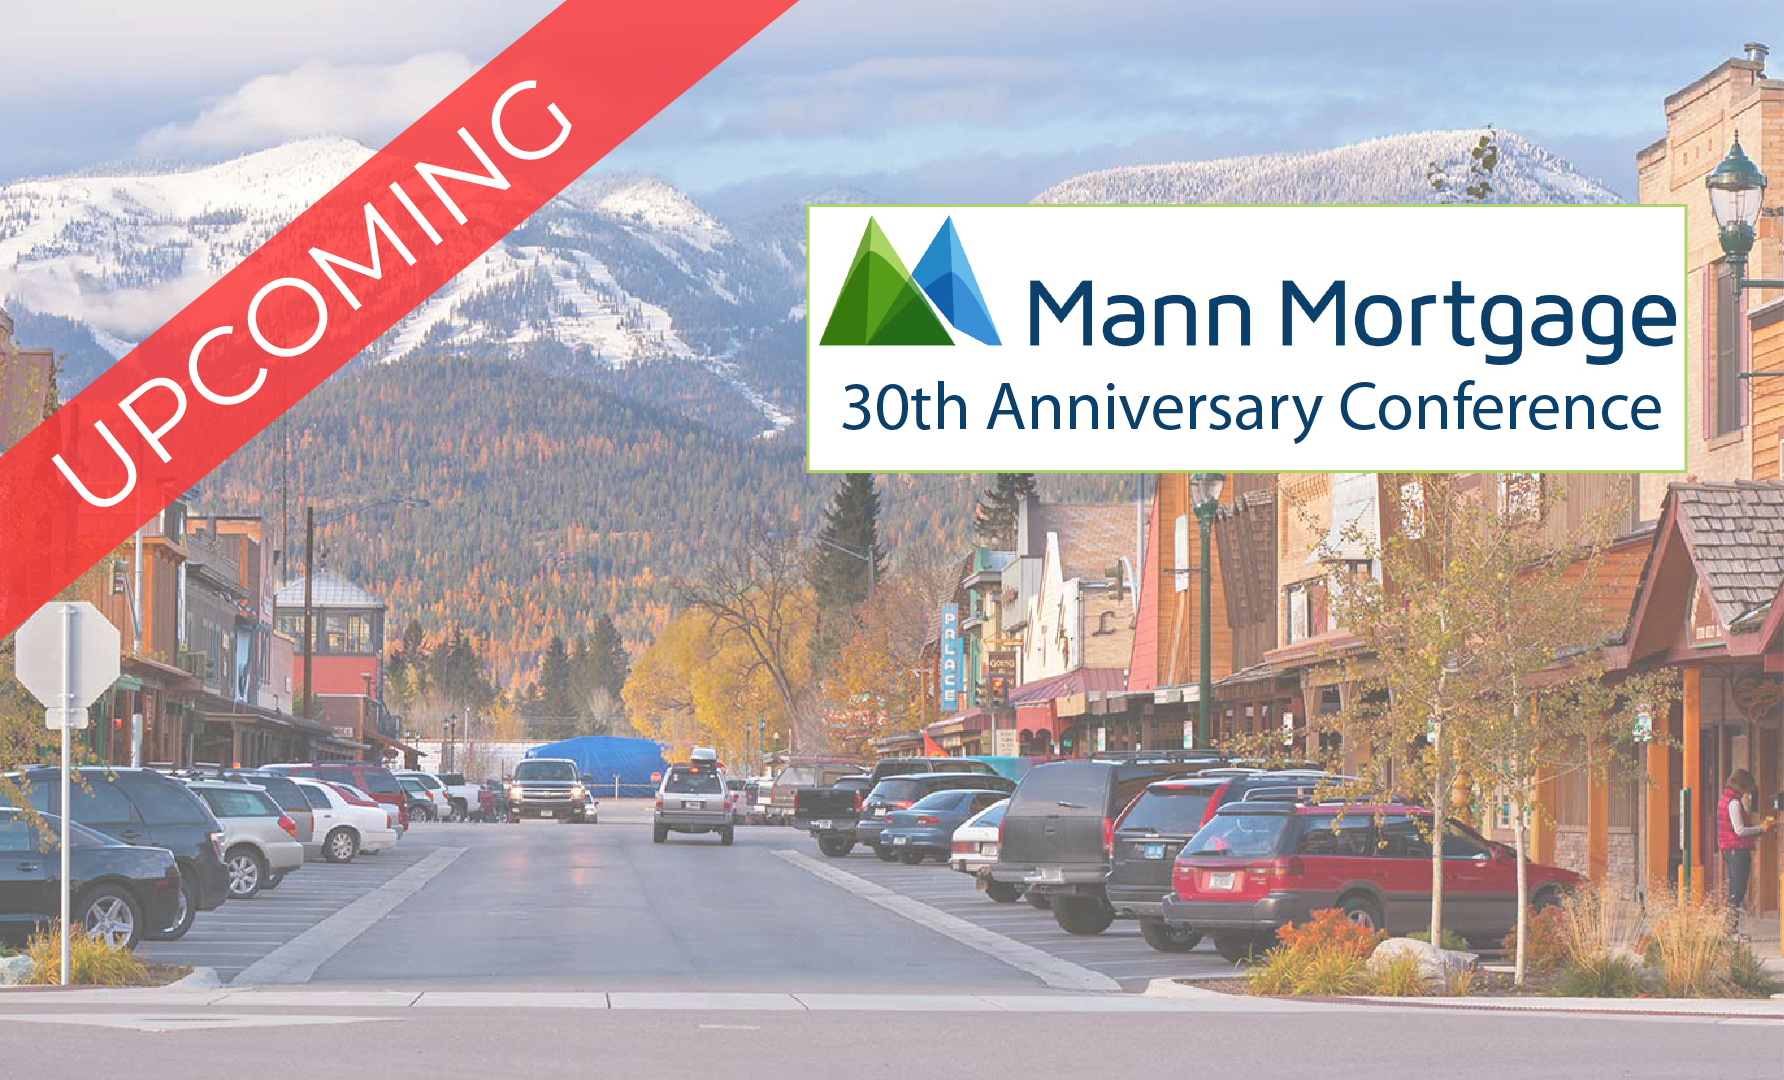 mann mortgage conference.png